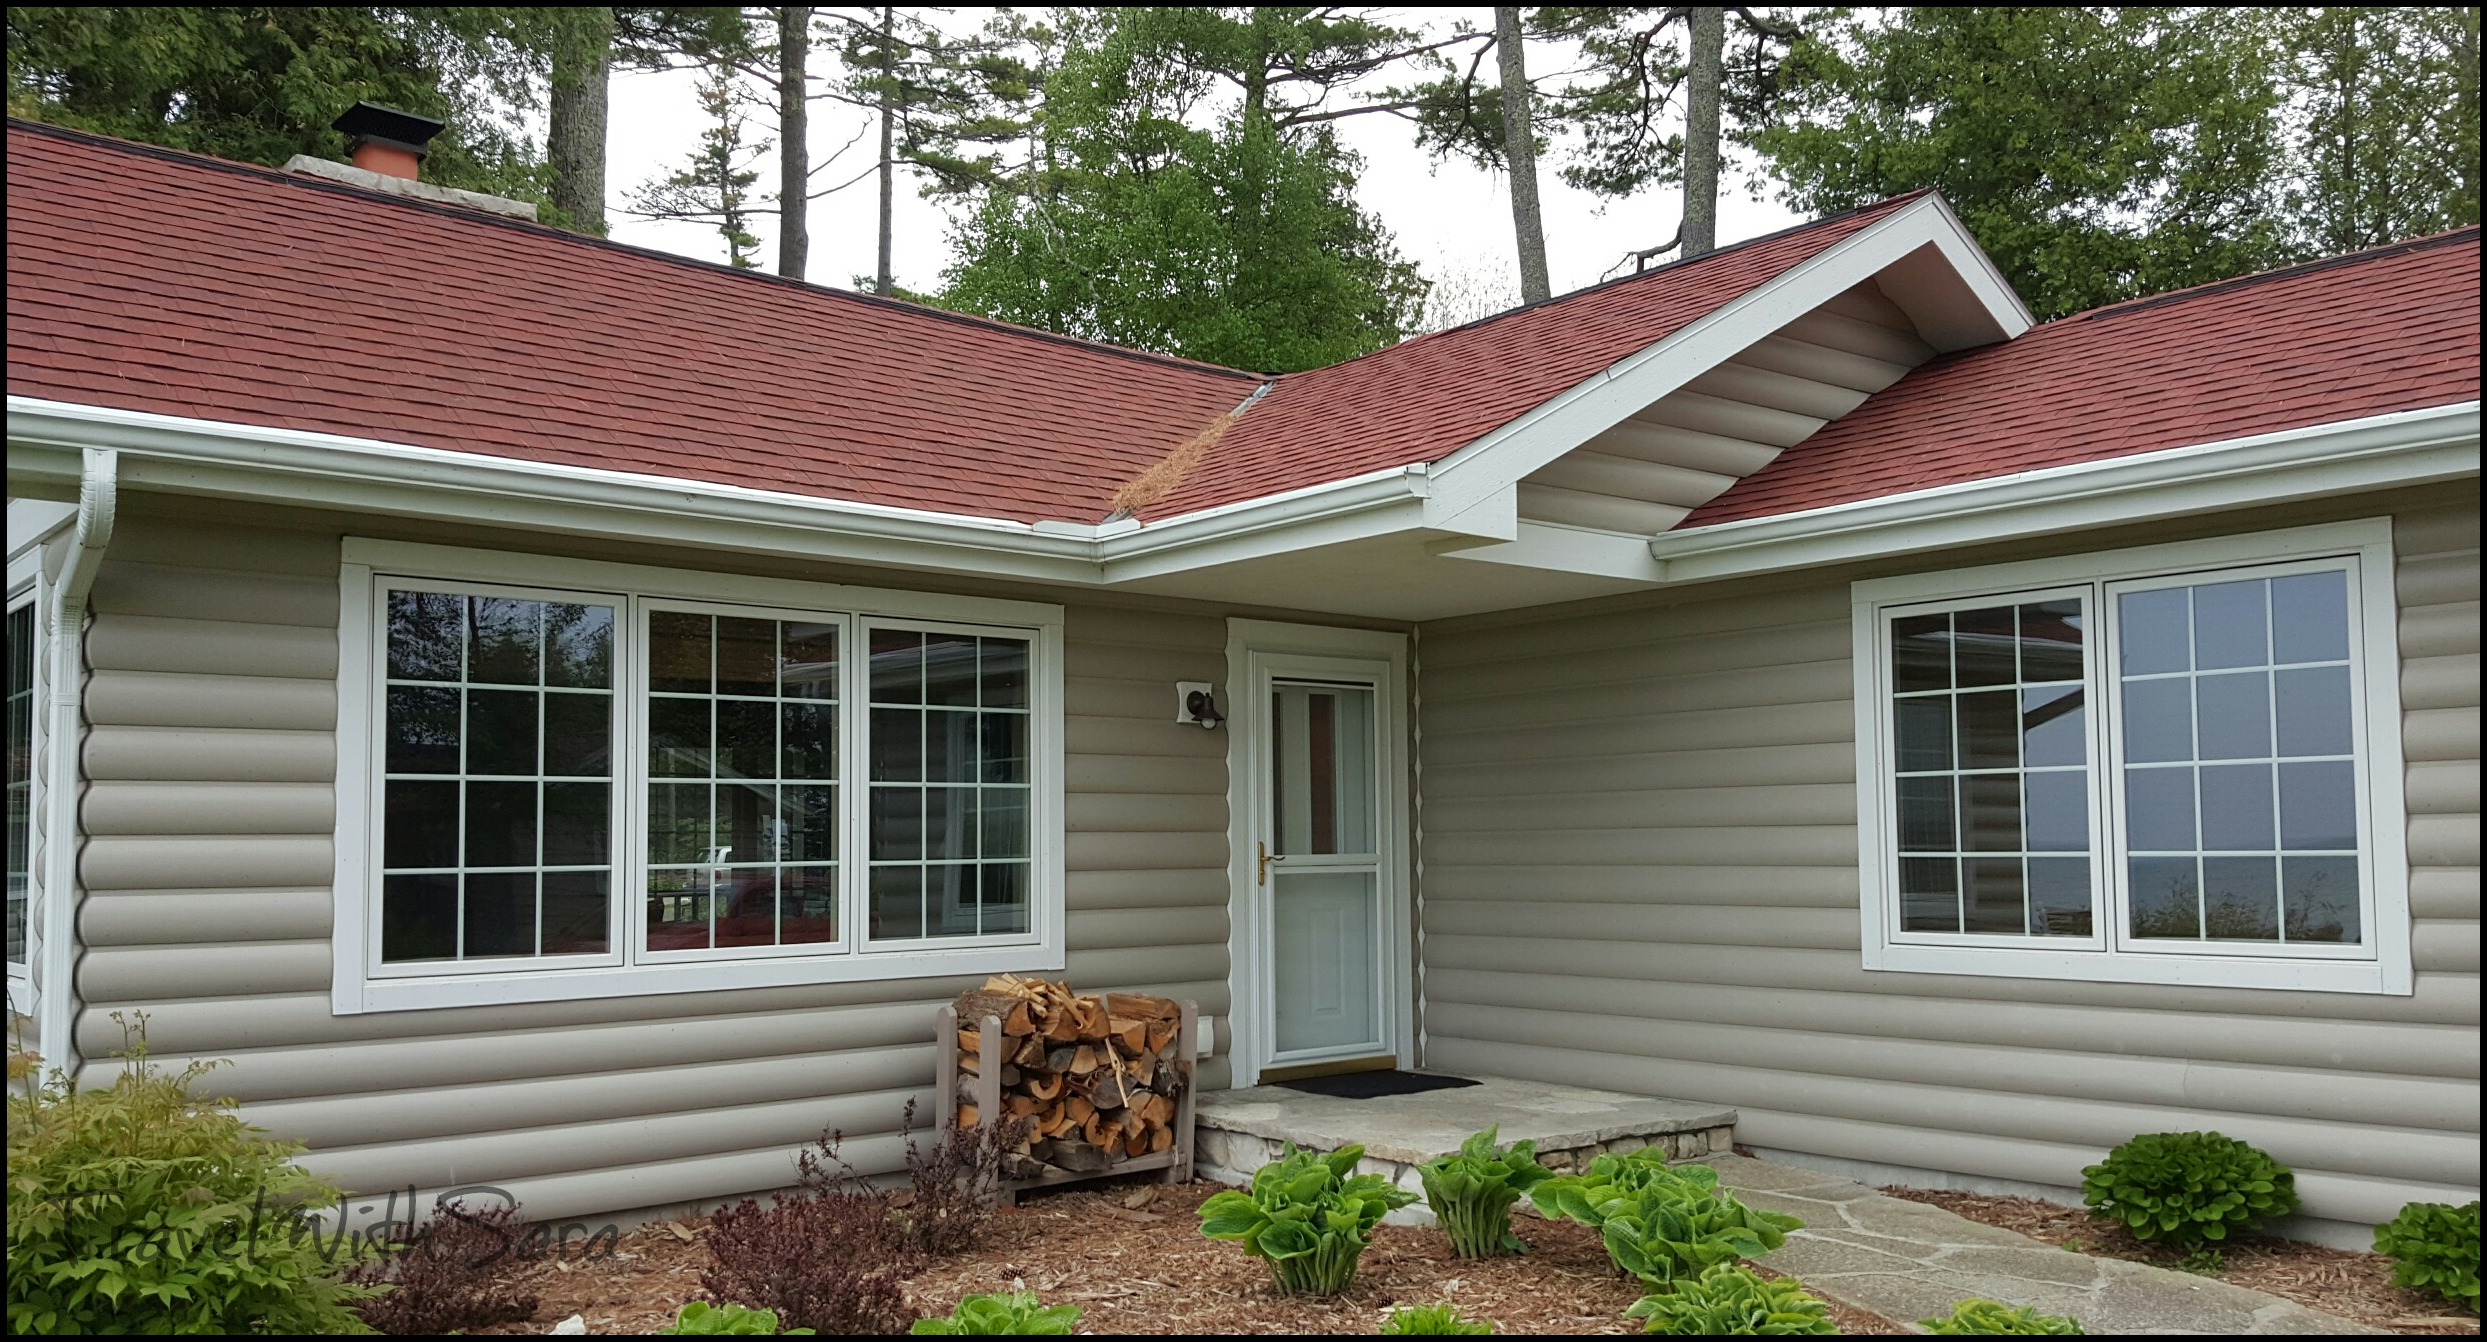 Gordon Lodge Cottage & Gordon Lodge In Door County Offers Family Friendly Lodging ...